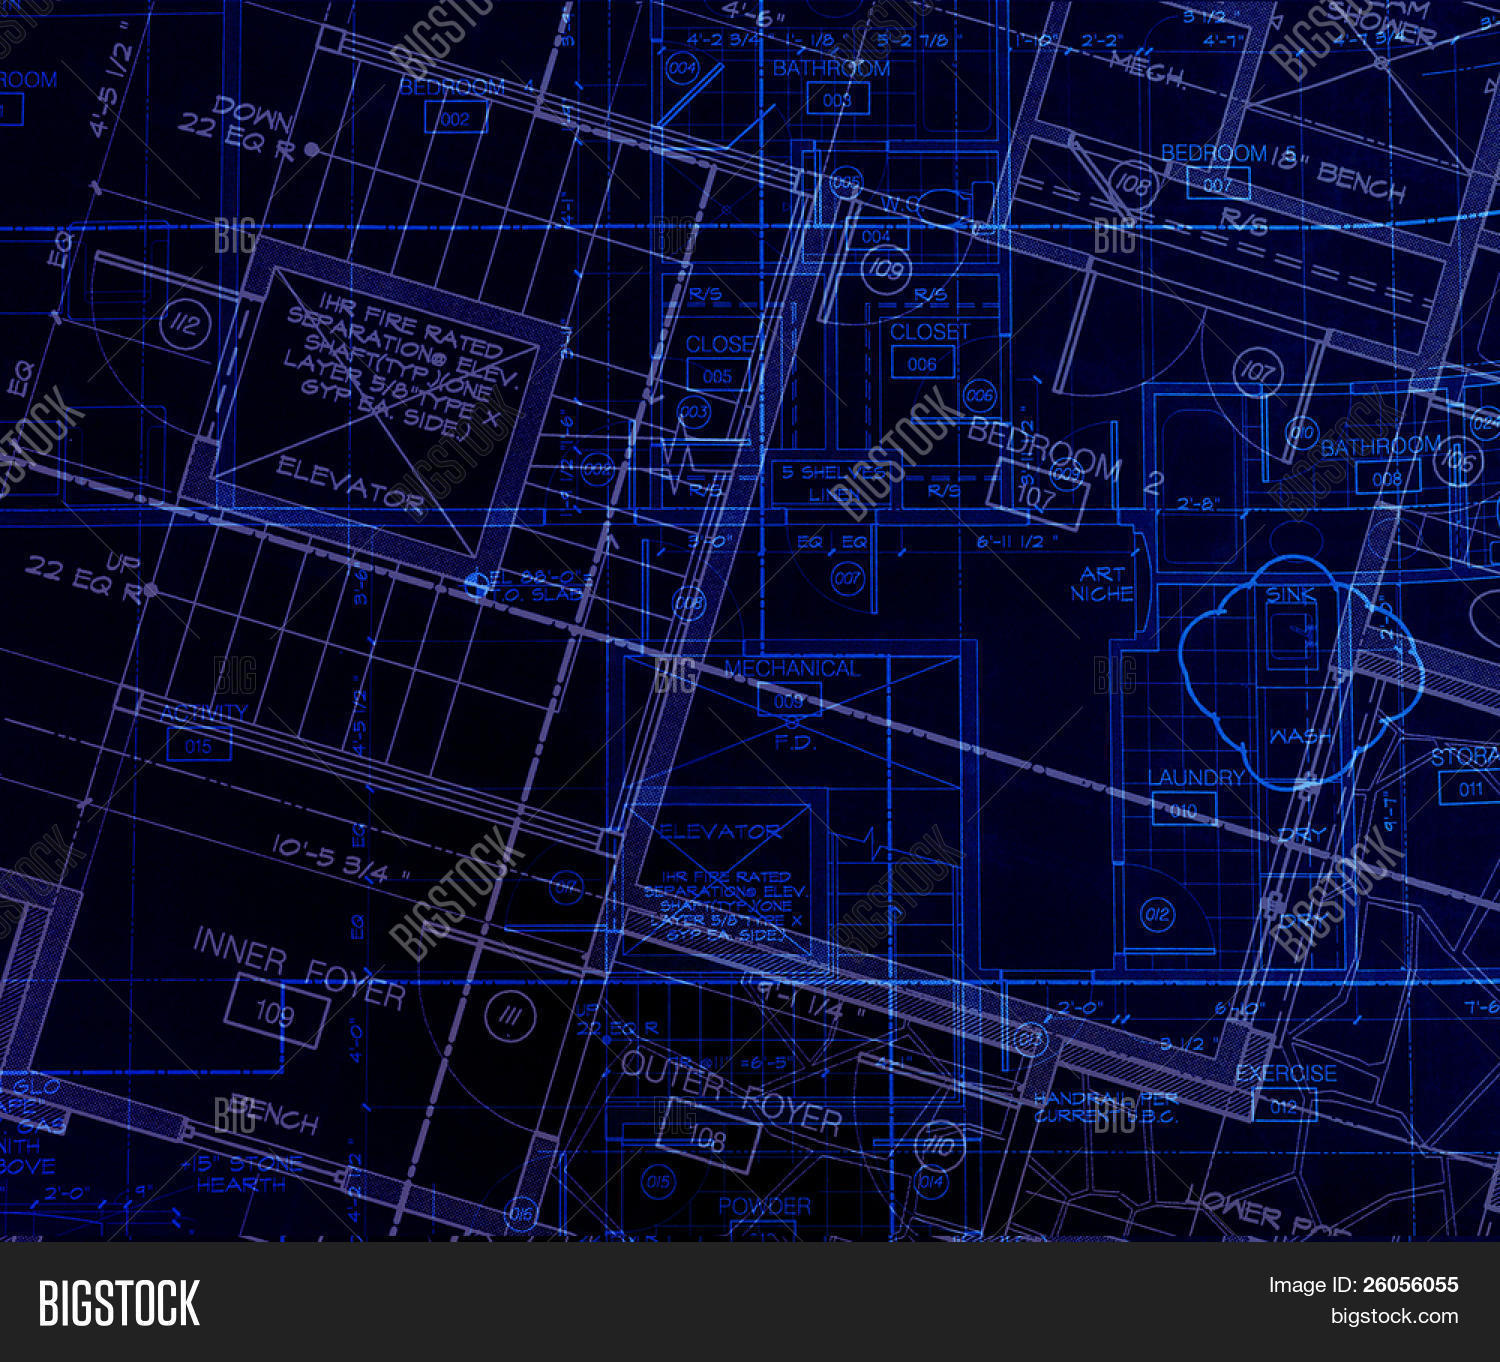 Astonishing Abstract House Plans Image Photo Free Trial Bigstock Download Free Architecture Designs Embacsunscenecom